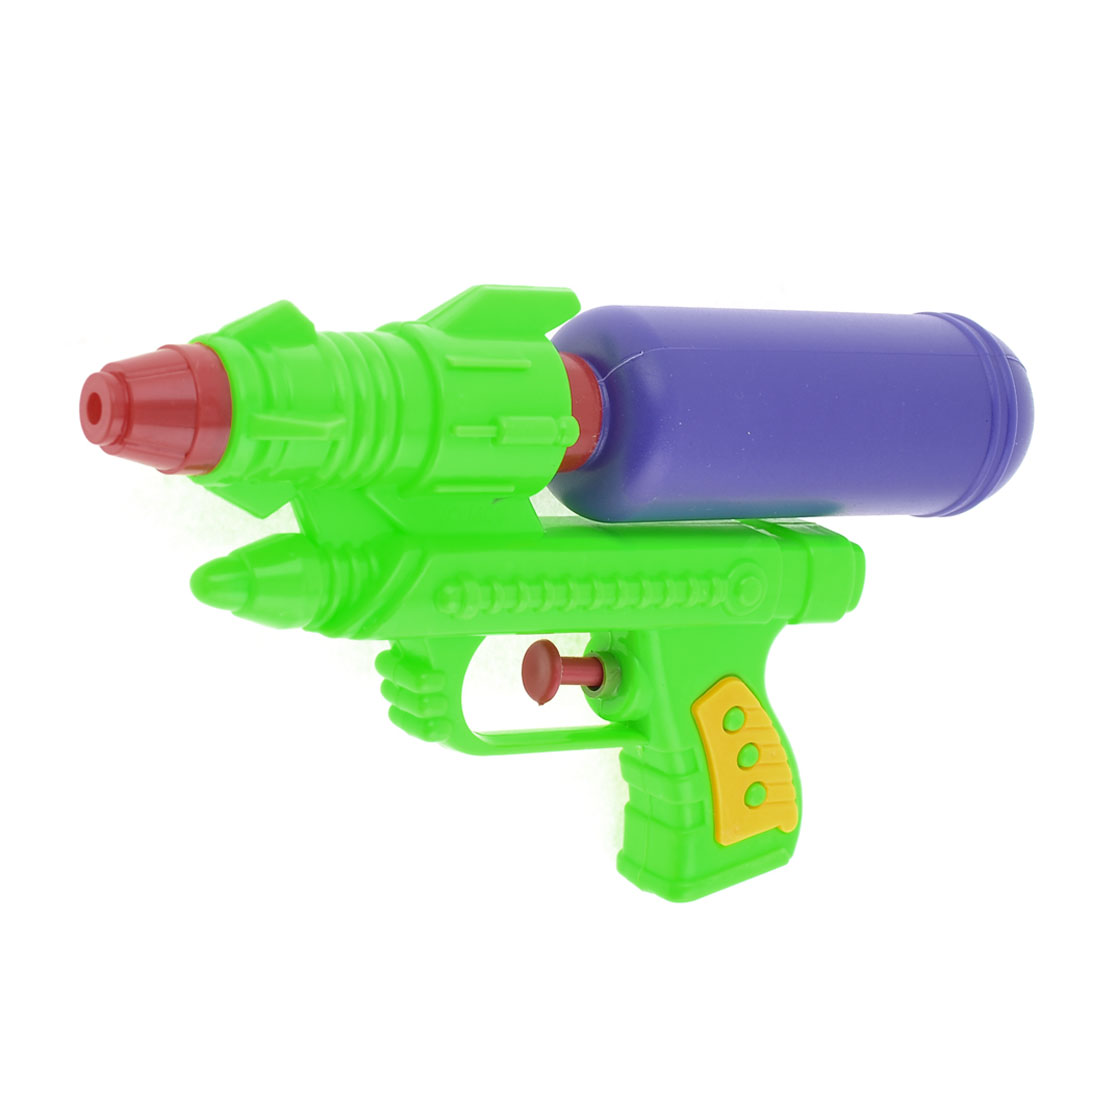 Green Purple Plastic Water Fighting Game Gun Toy for Children